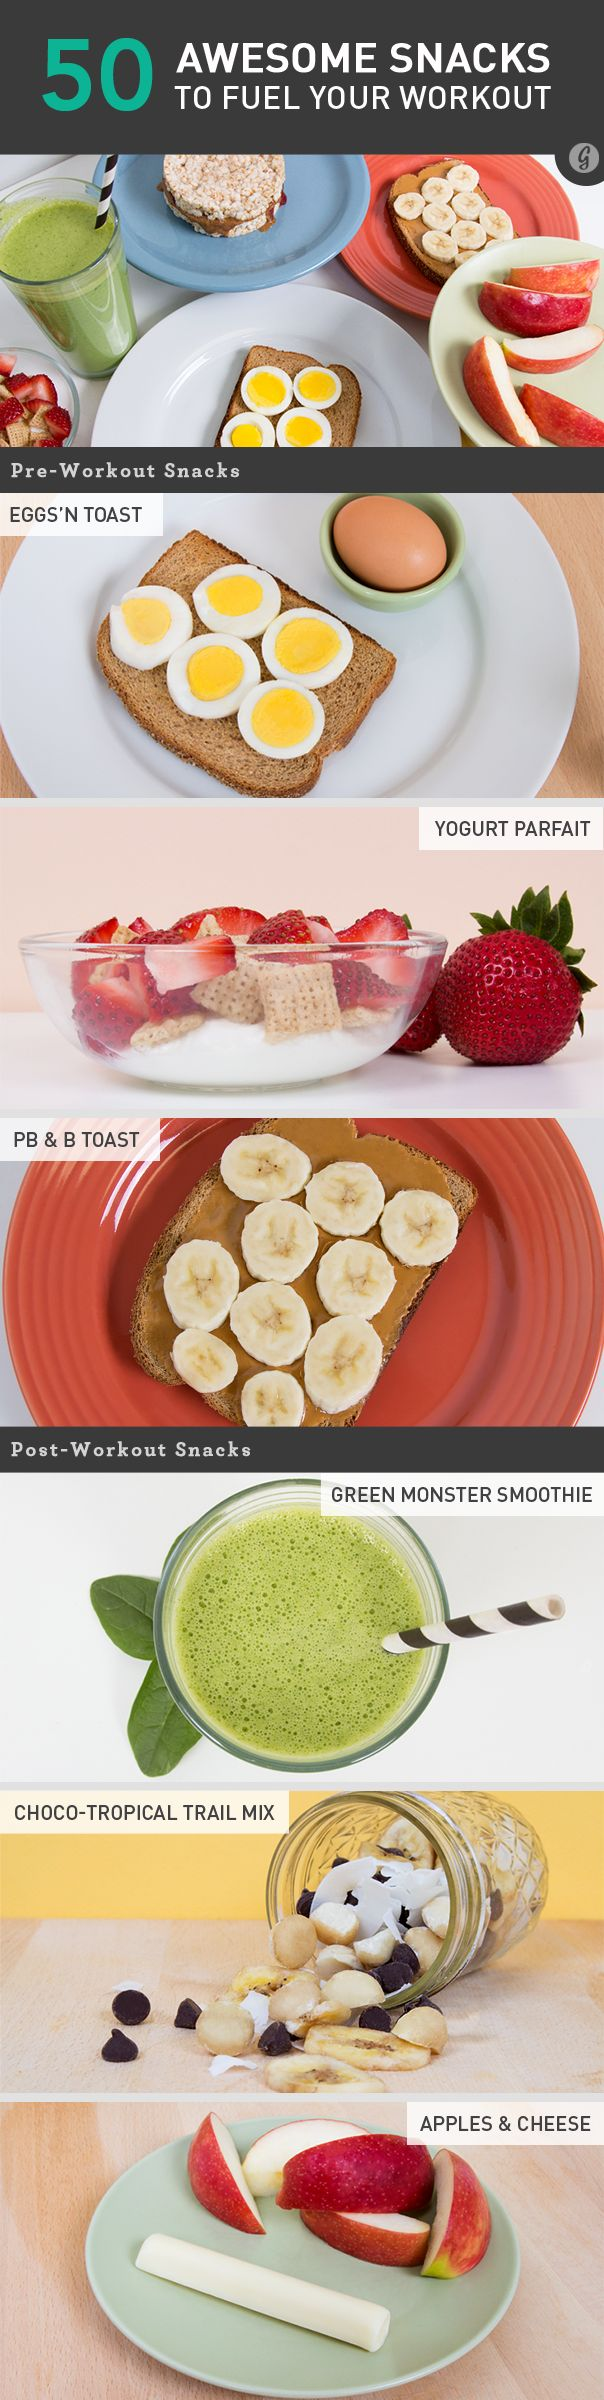 50 Healthy Snacks #fitness #weightloss #womenshealth